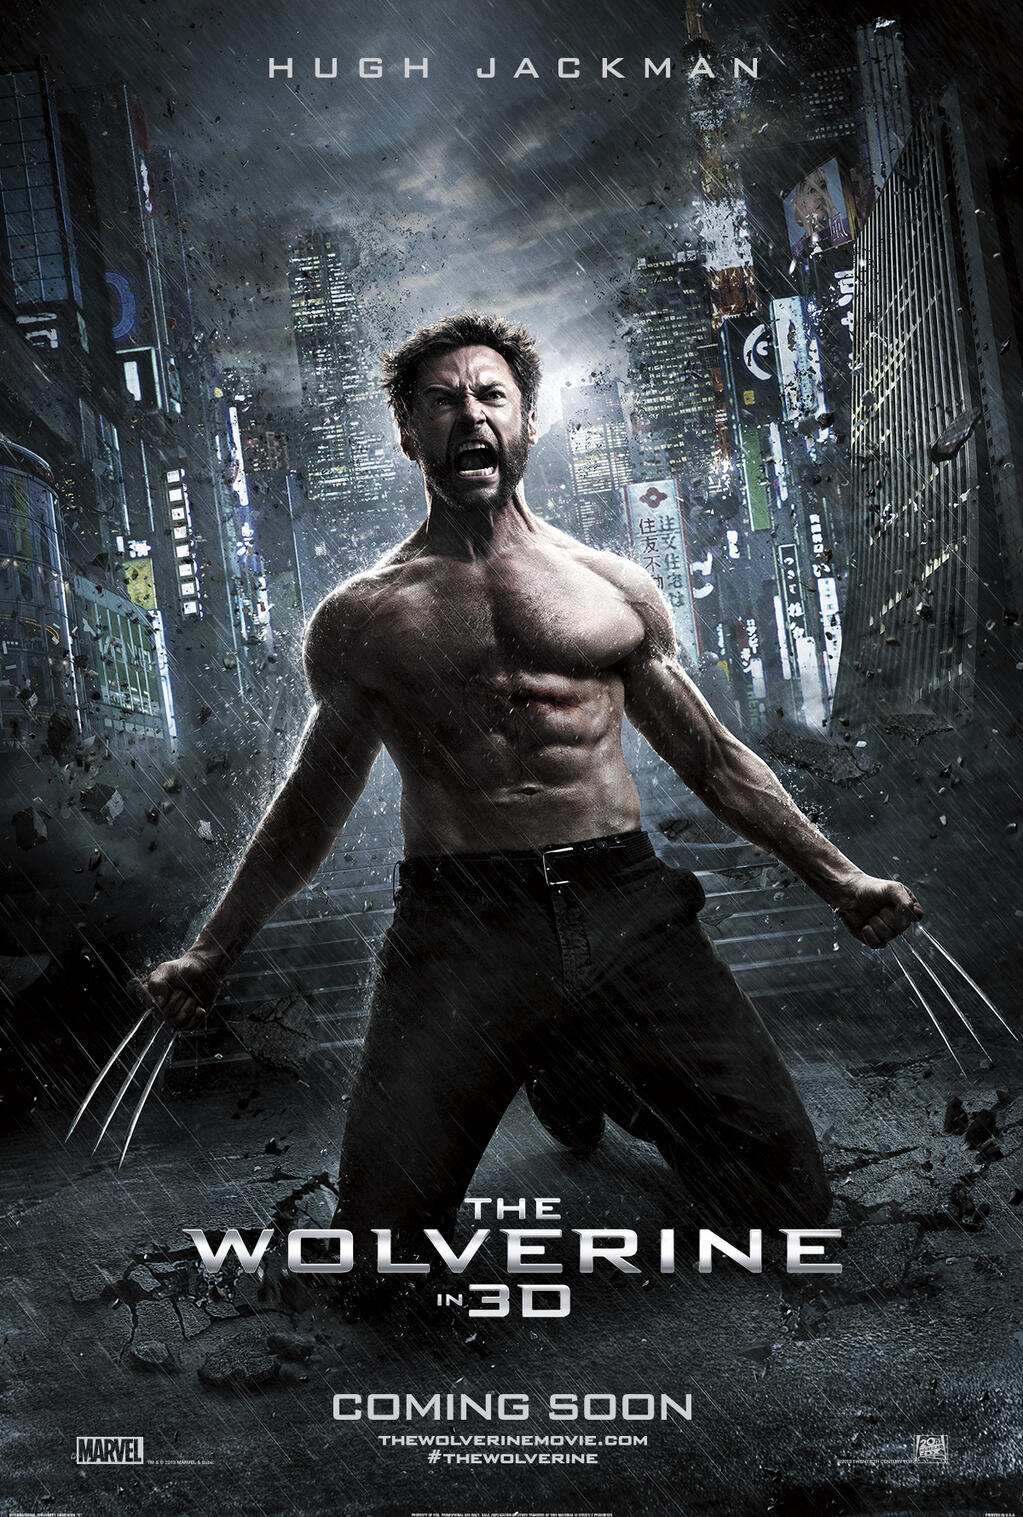 http://collider.com/wp-content/uploads/the-wolverine-poster.jpeg